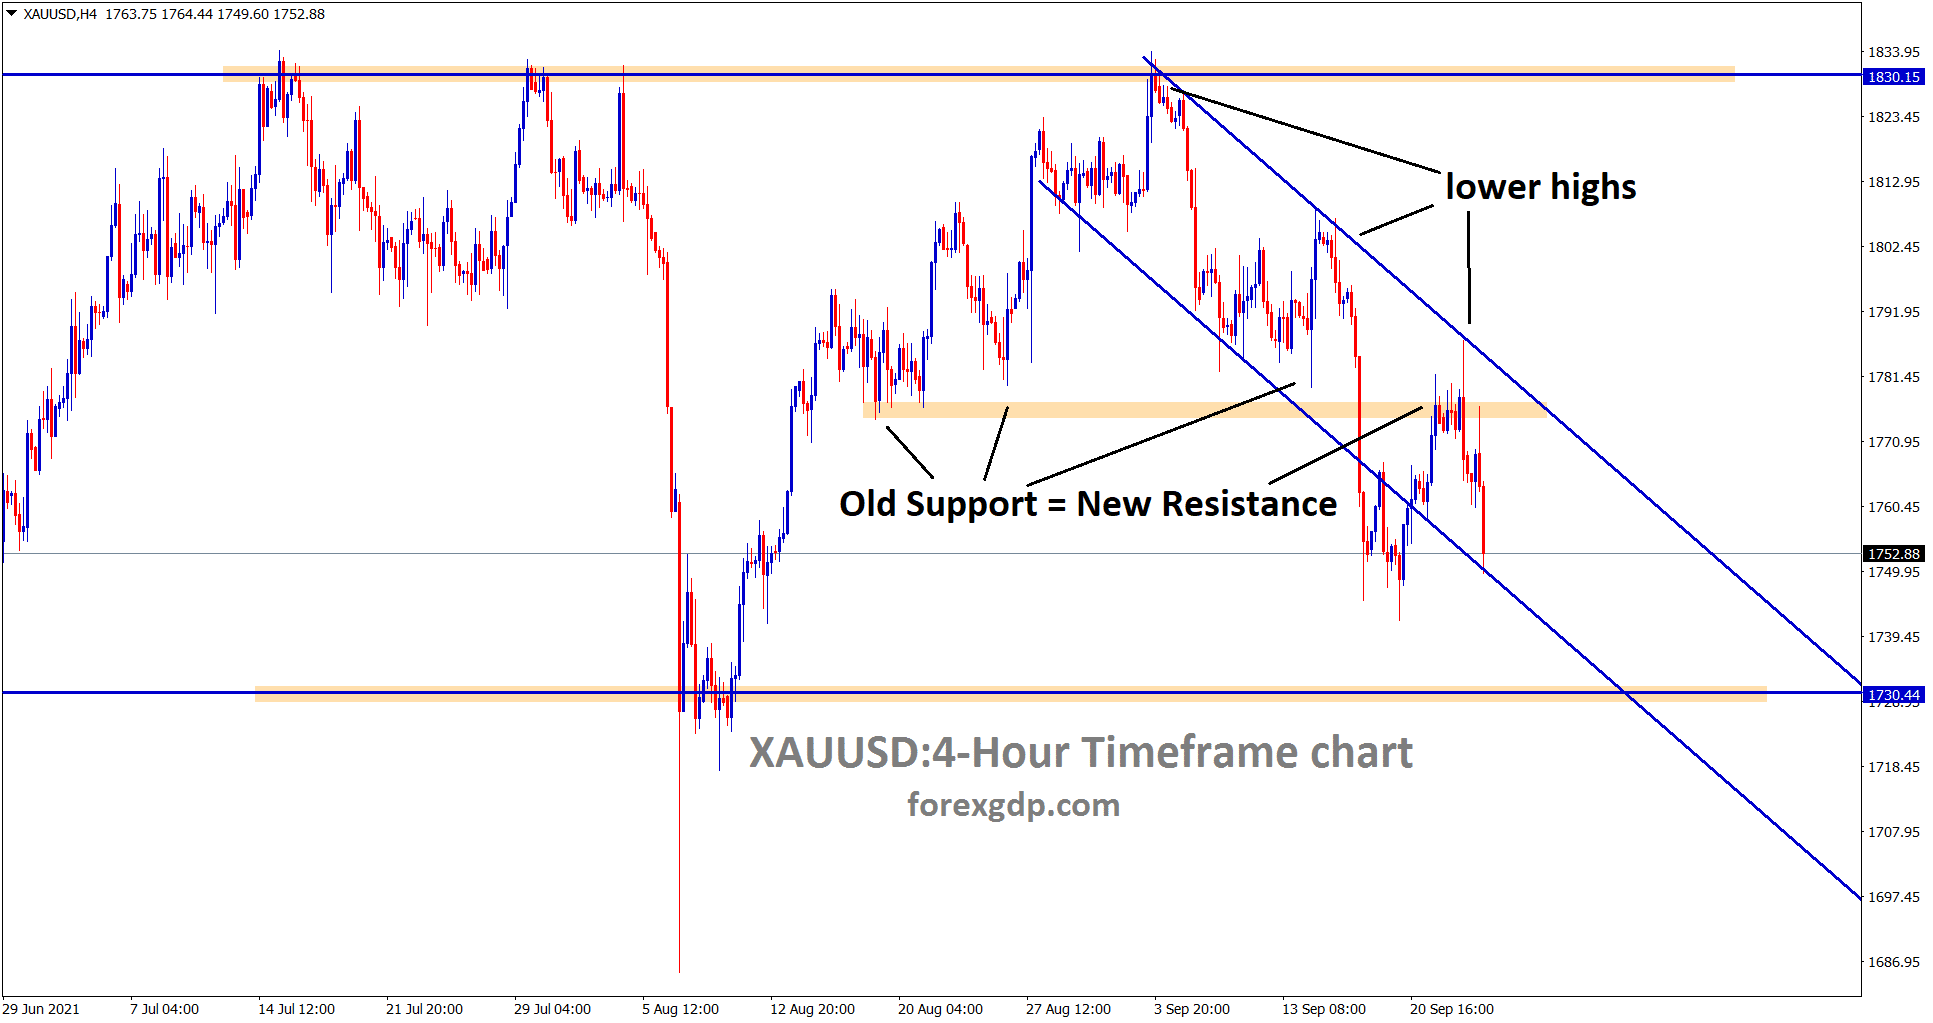 Gold is moving in a clear descending channel range